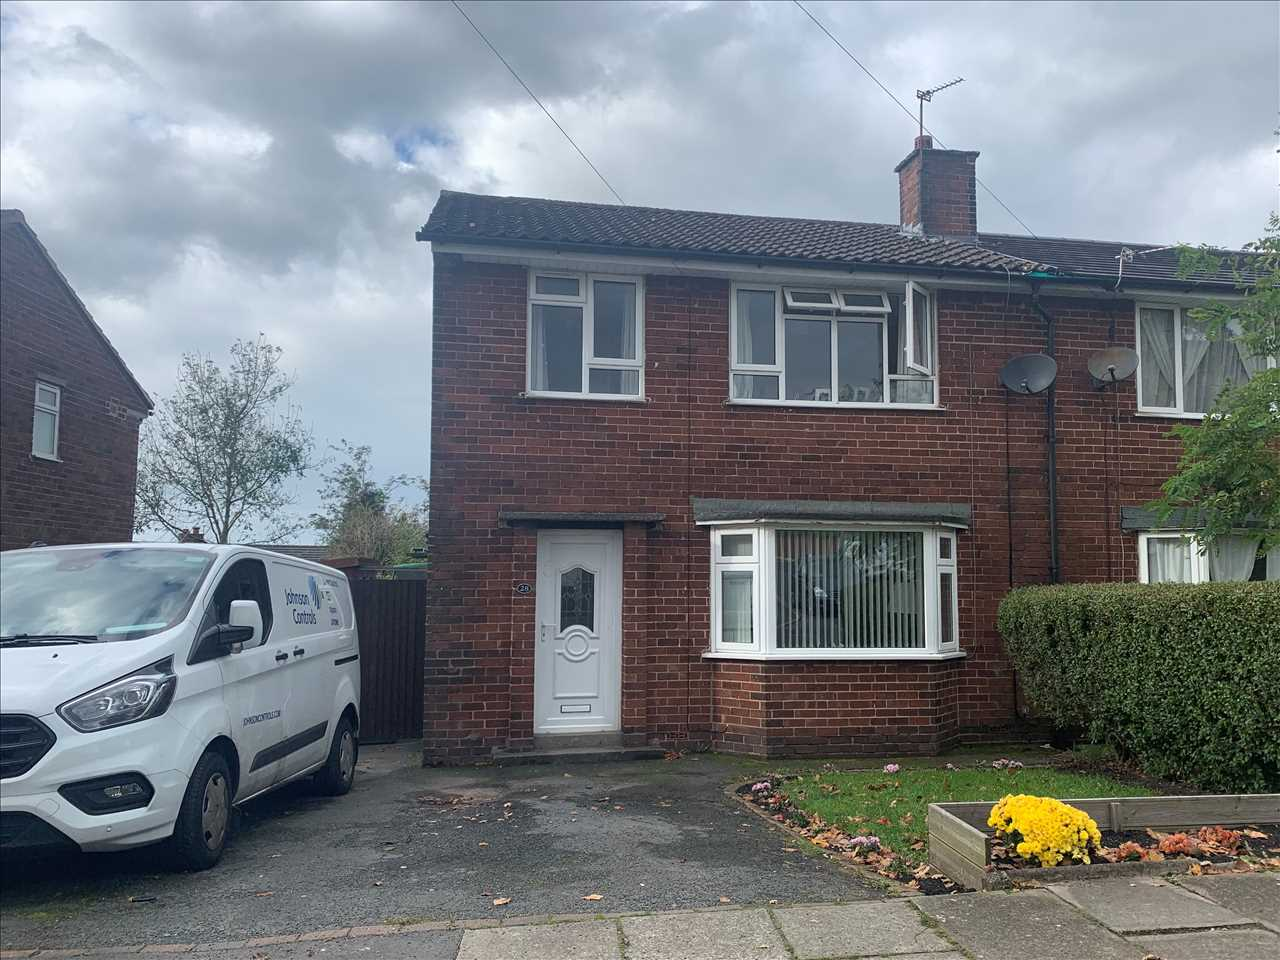 3 bed semi-detached for sale in Chester Place, Adlington - Property Image 1